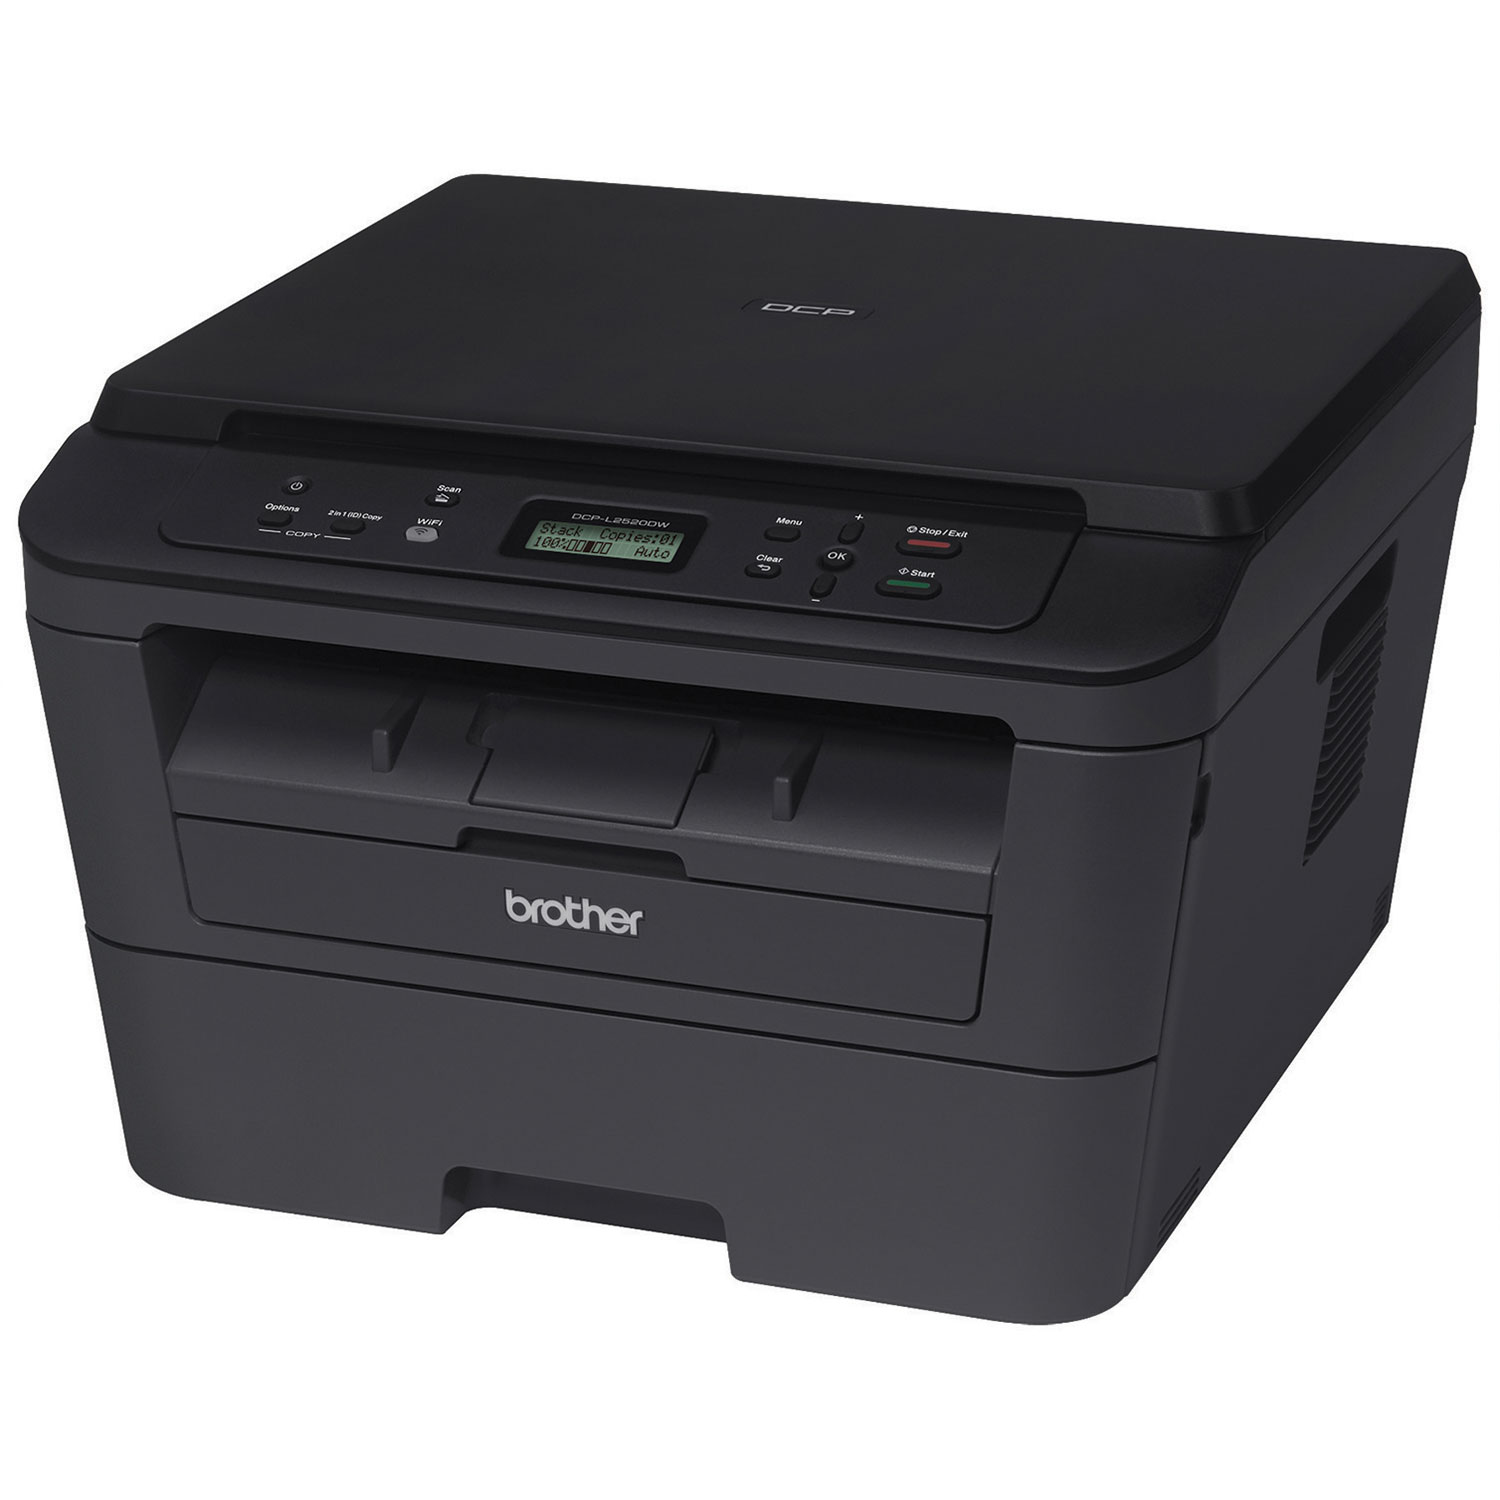 Hp hp color laser printers 11x17 - Brother Wireless All In One Laser Printer Dcp L2520dw